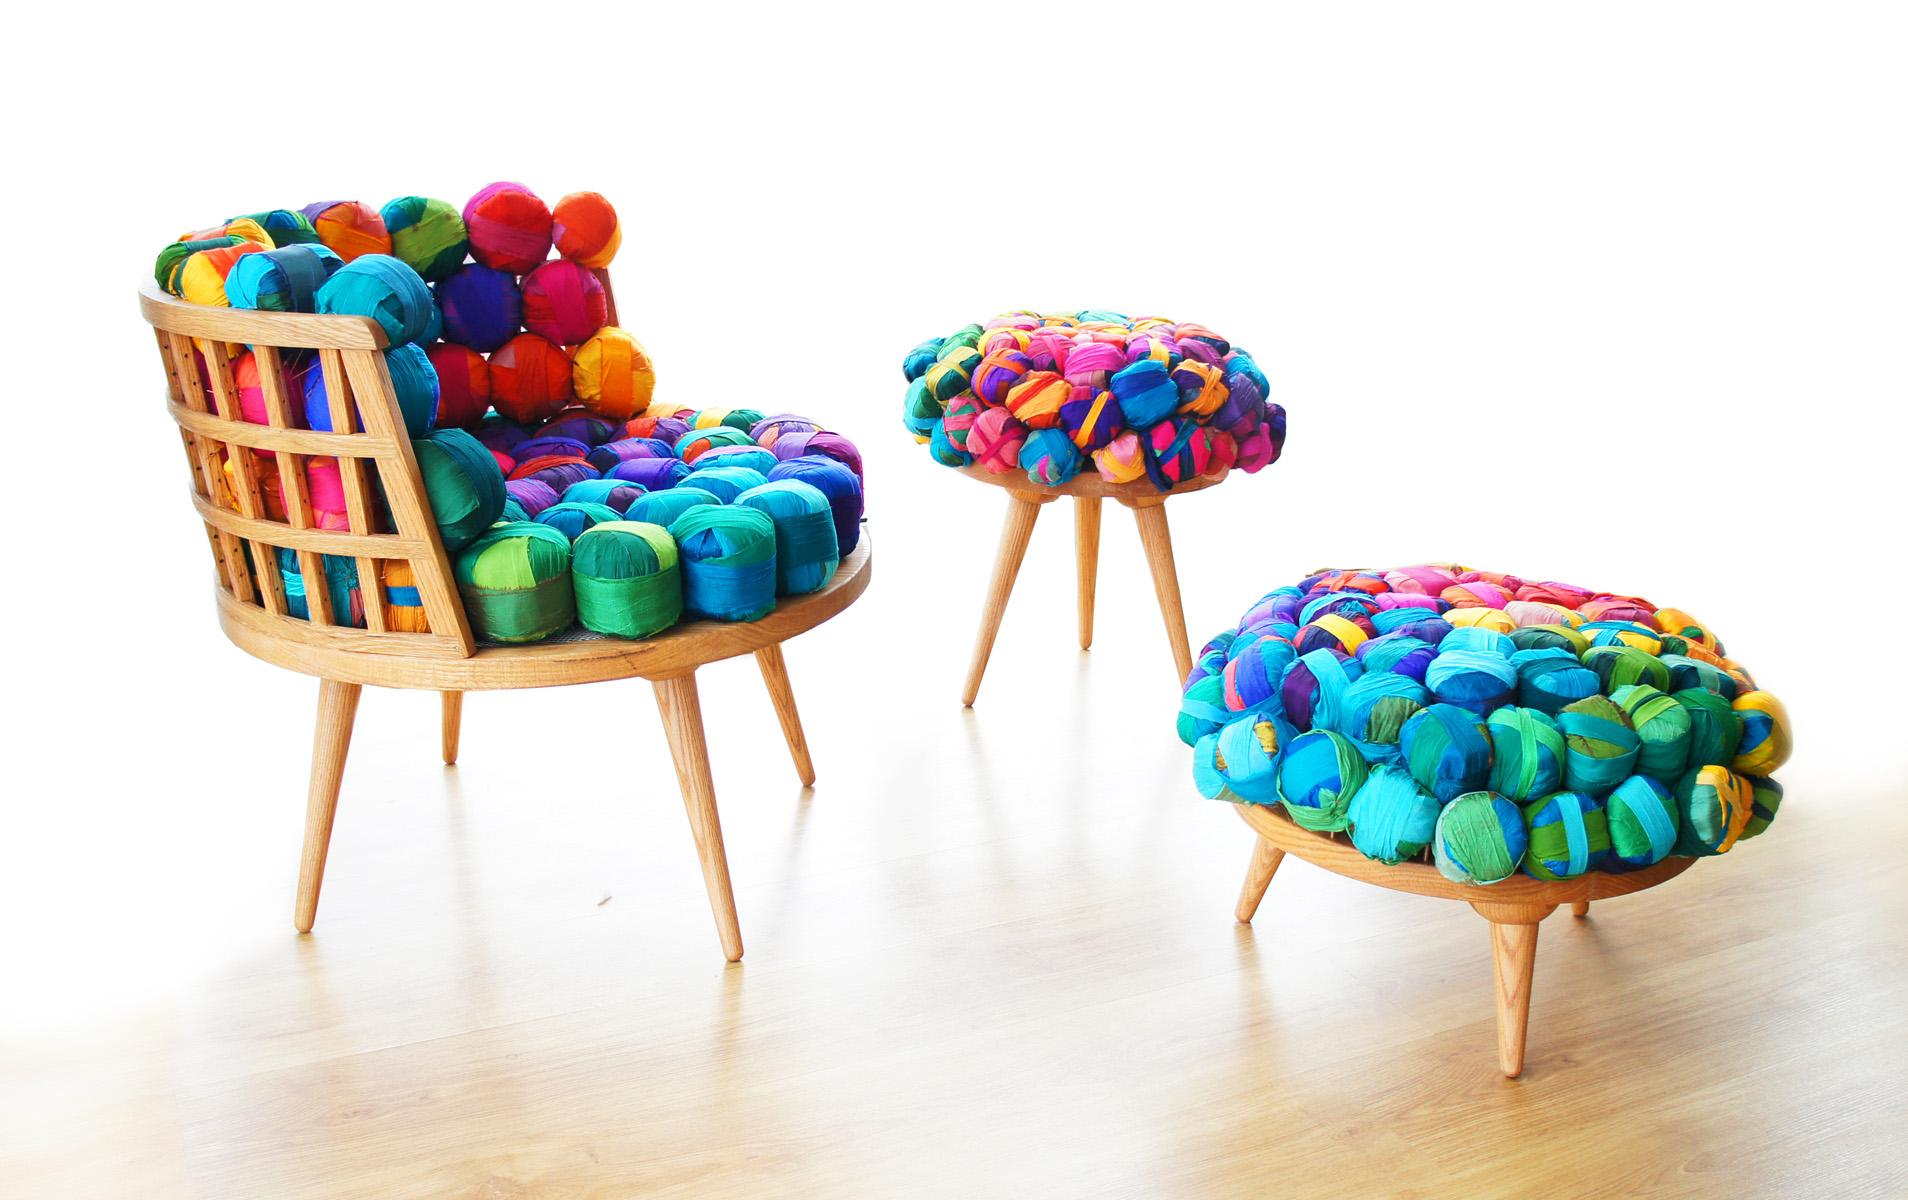 10 Reasons You Should Think Twice About Recycled Furniture